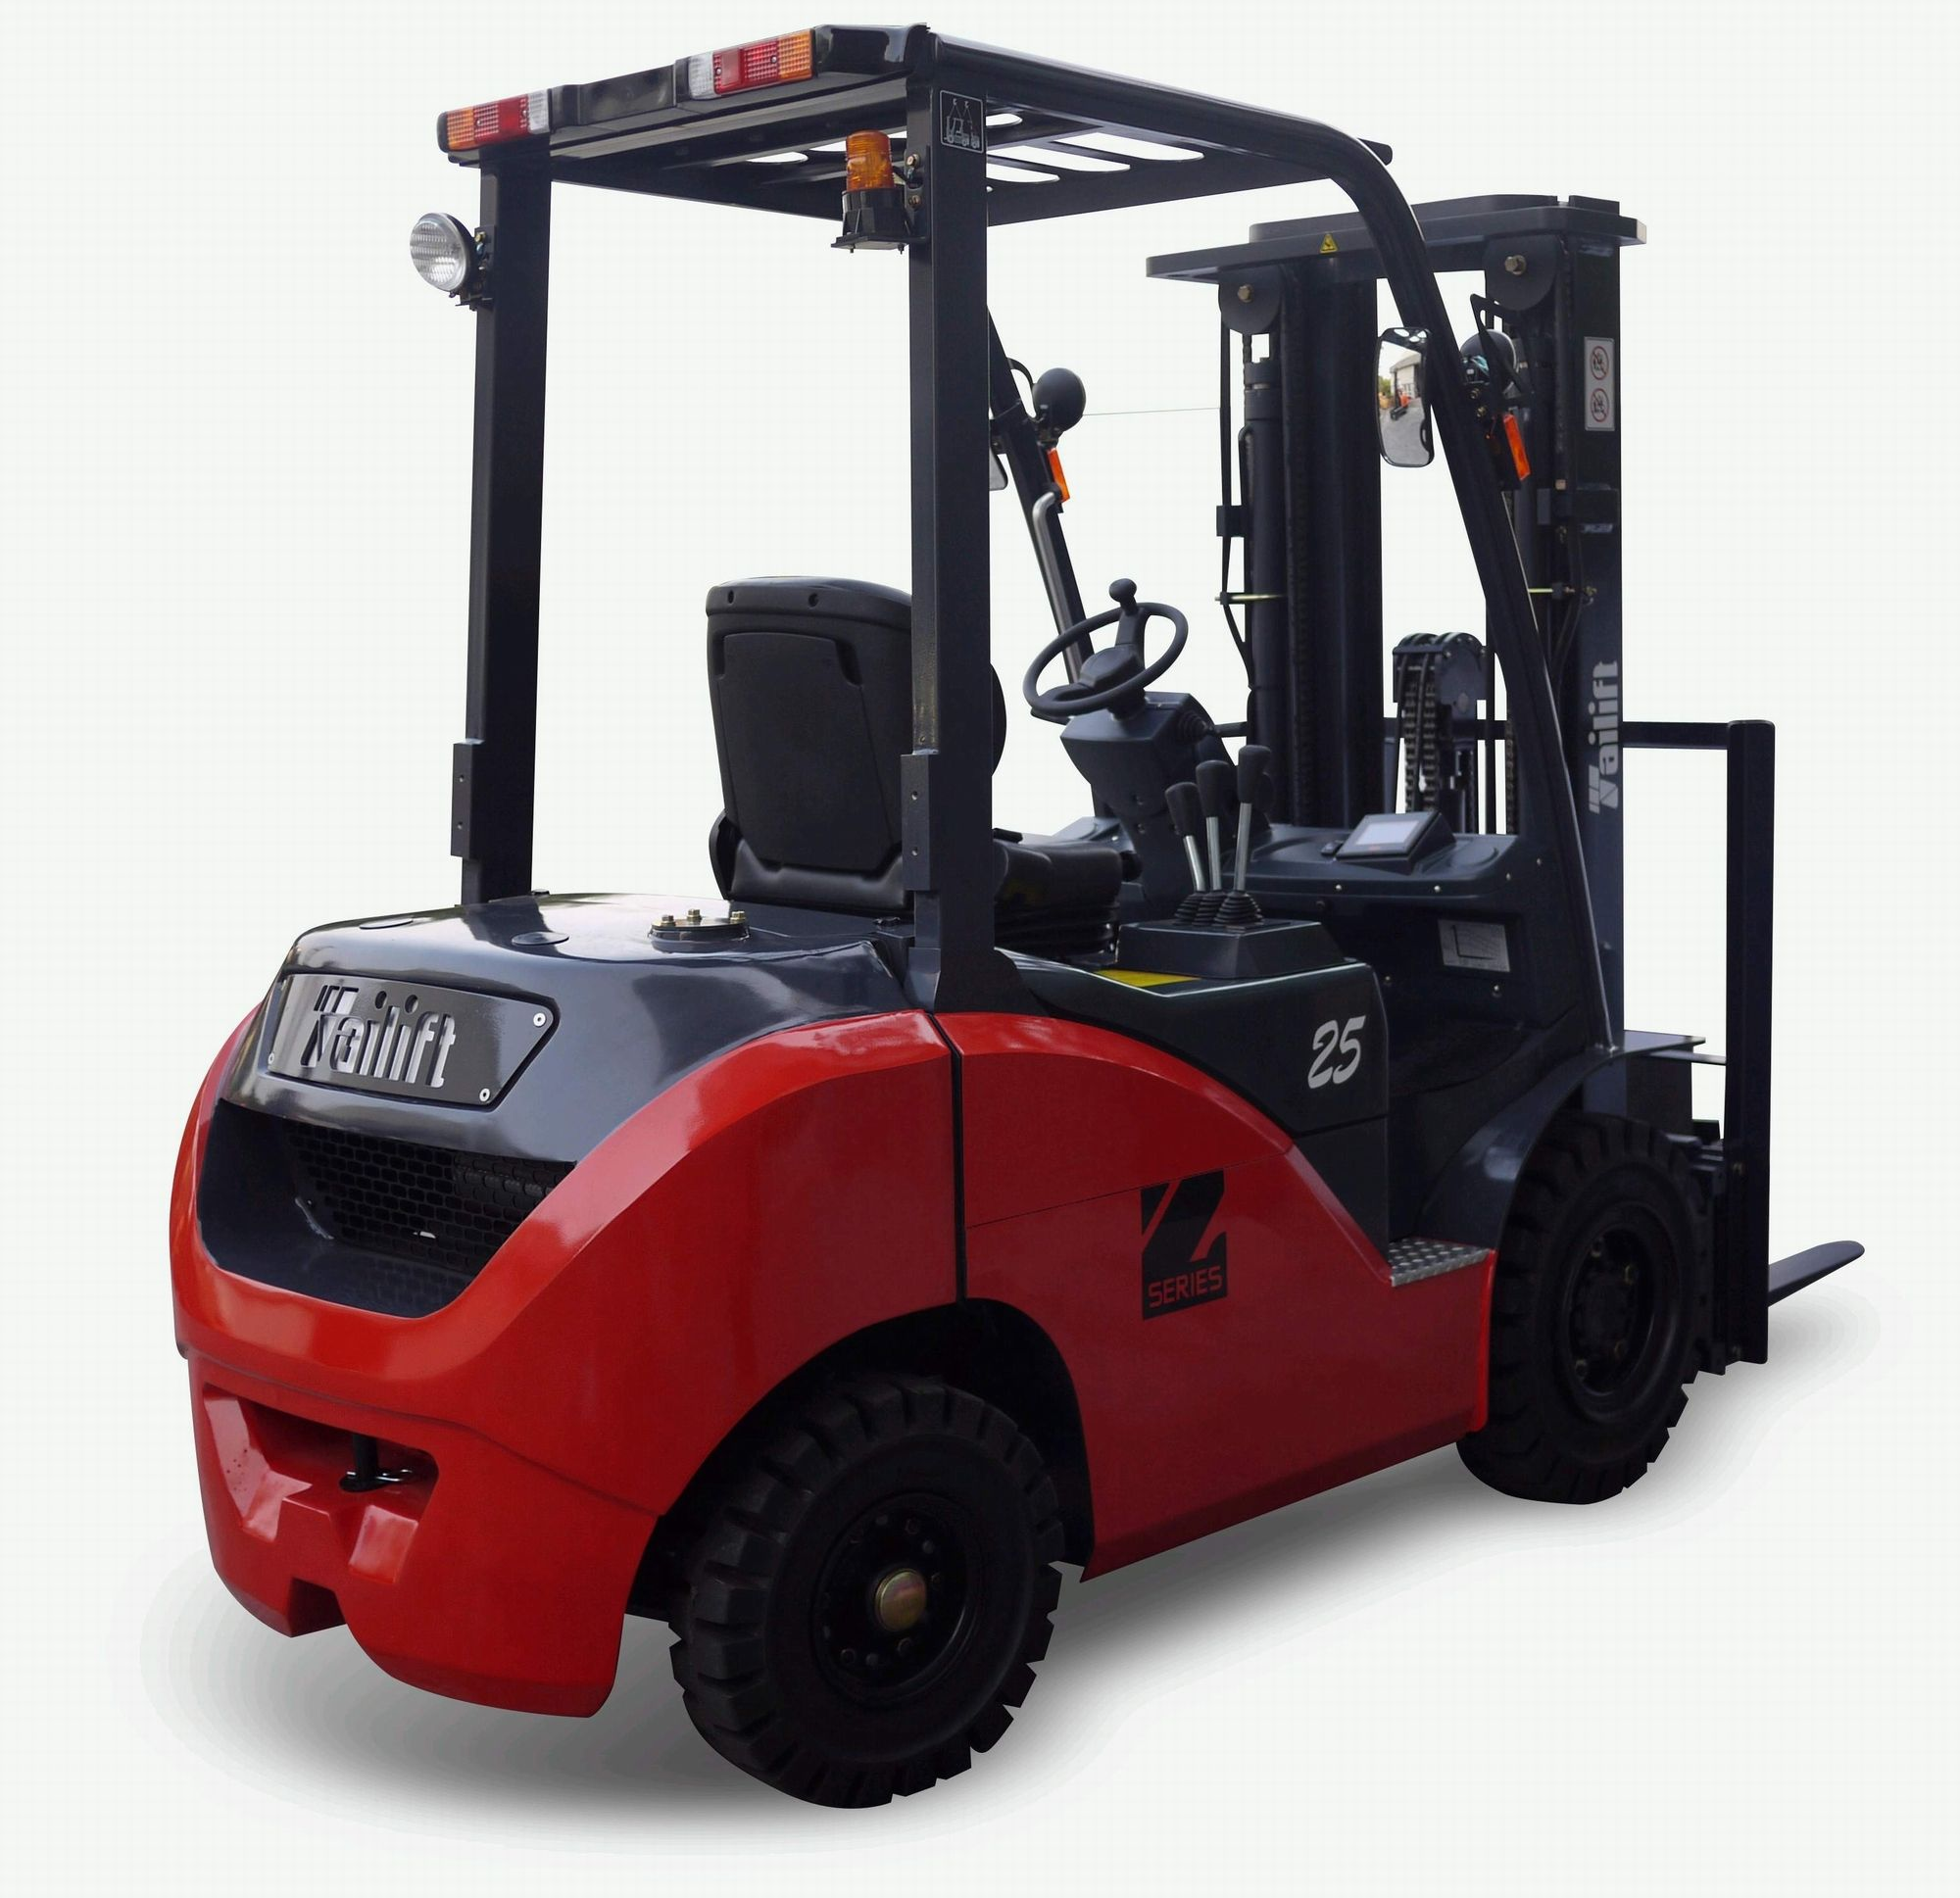 Brandnew forklifts with a fascinating working capacity